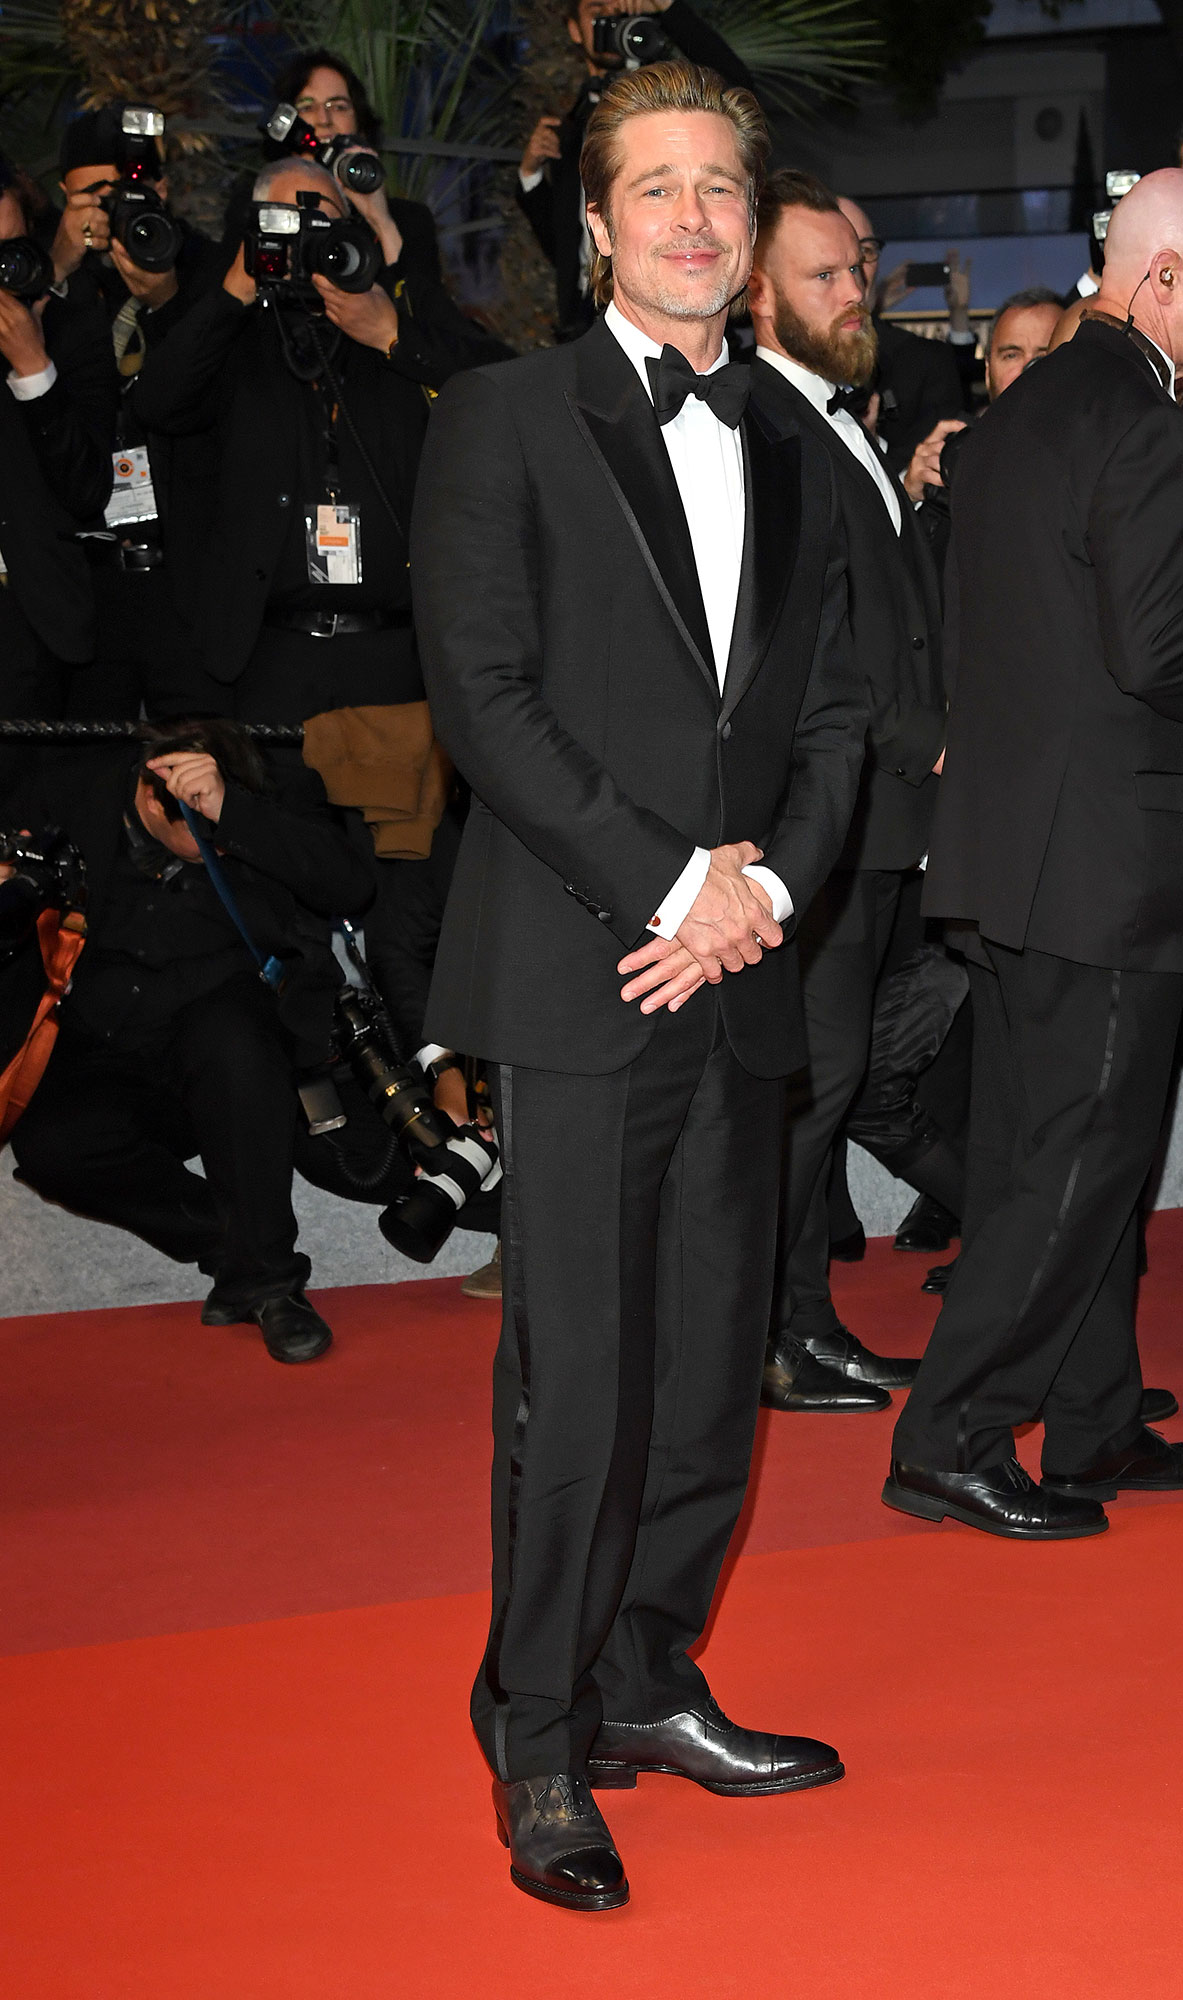 Brad Pitt Cannes Film Festival 2019 Most Stylish Guys Red Carpet - The Once Upon a Time in Hollywood star looked sharp in a black tux at the film's premiere on Tuesday, May 21.